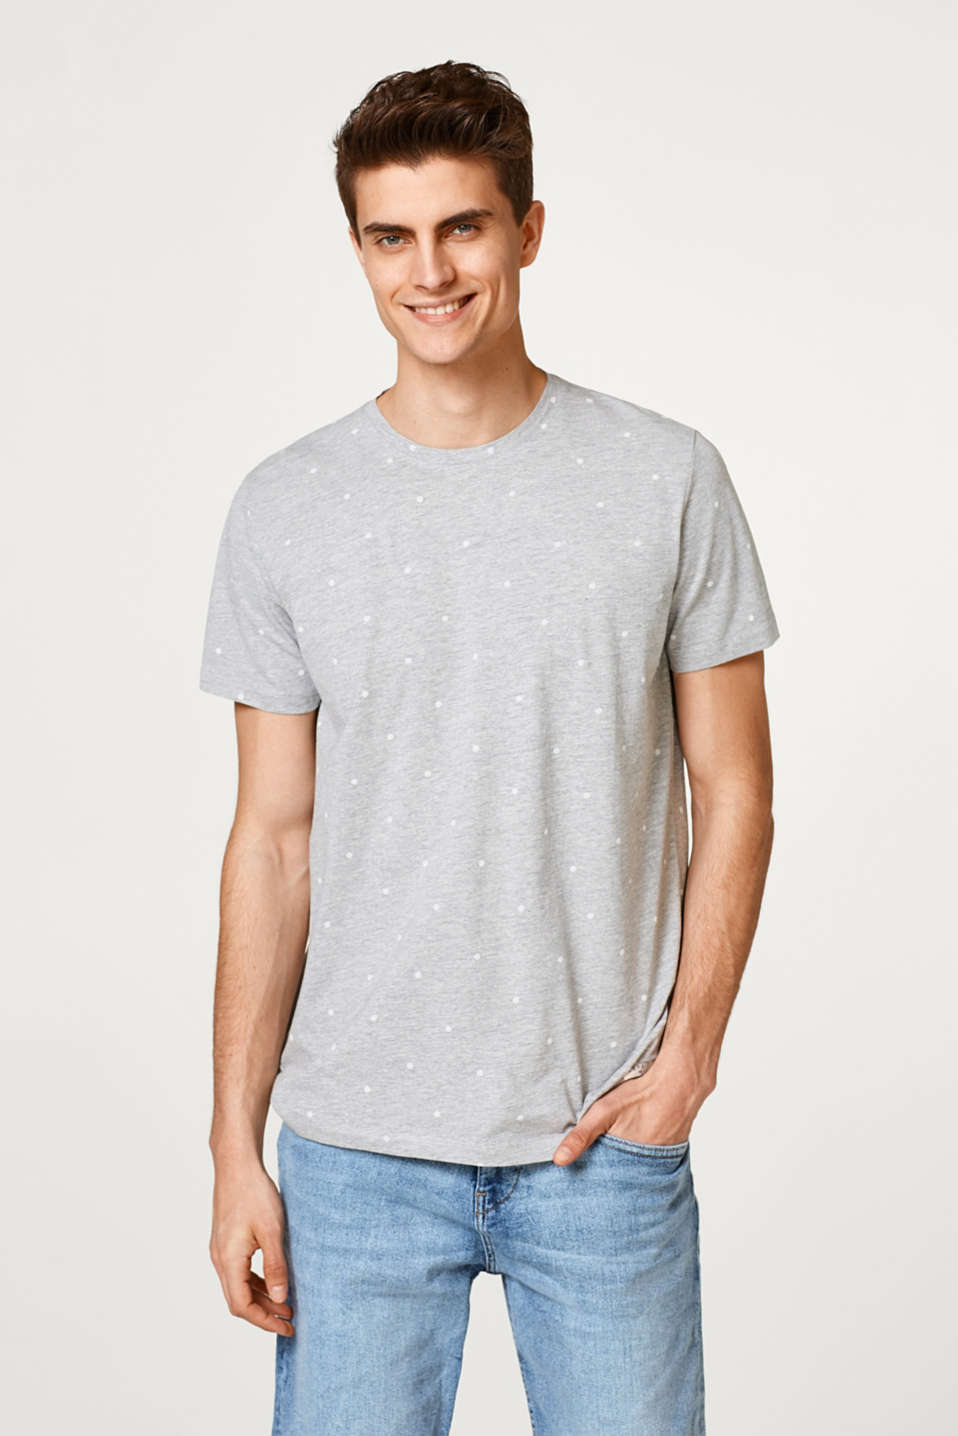 Esprit - Blended cotton jersey T-shirt with a polka dot pattern